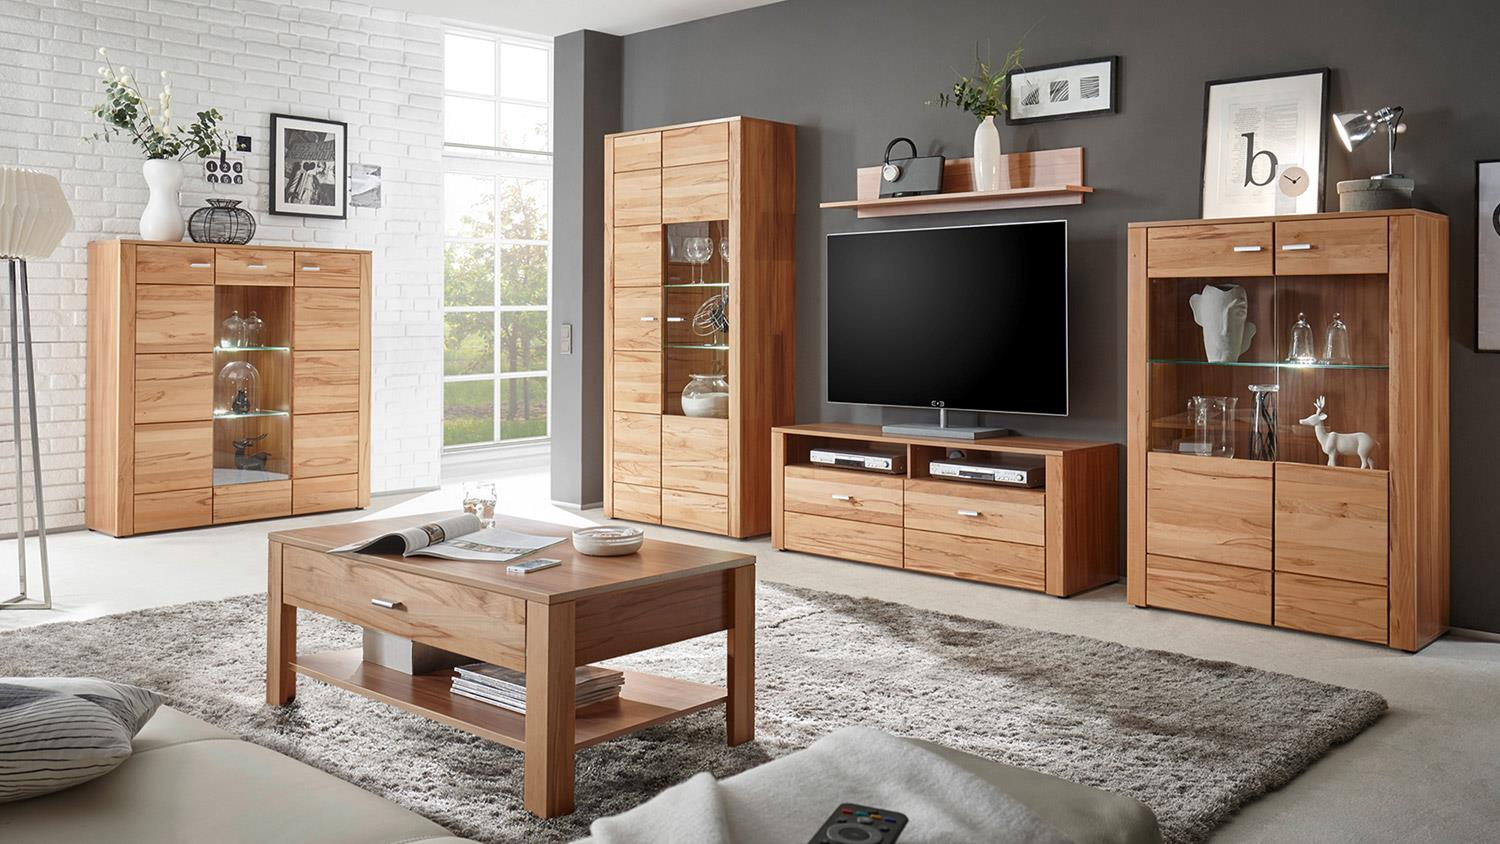 wohnwand 3 donau front in kernbuche massiv ge lt inkl led beleuchtung. Black Bedroom Furniture Sets. Home Design Ideas